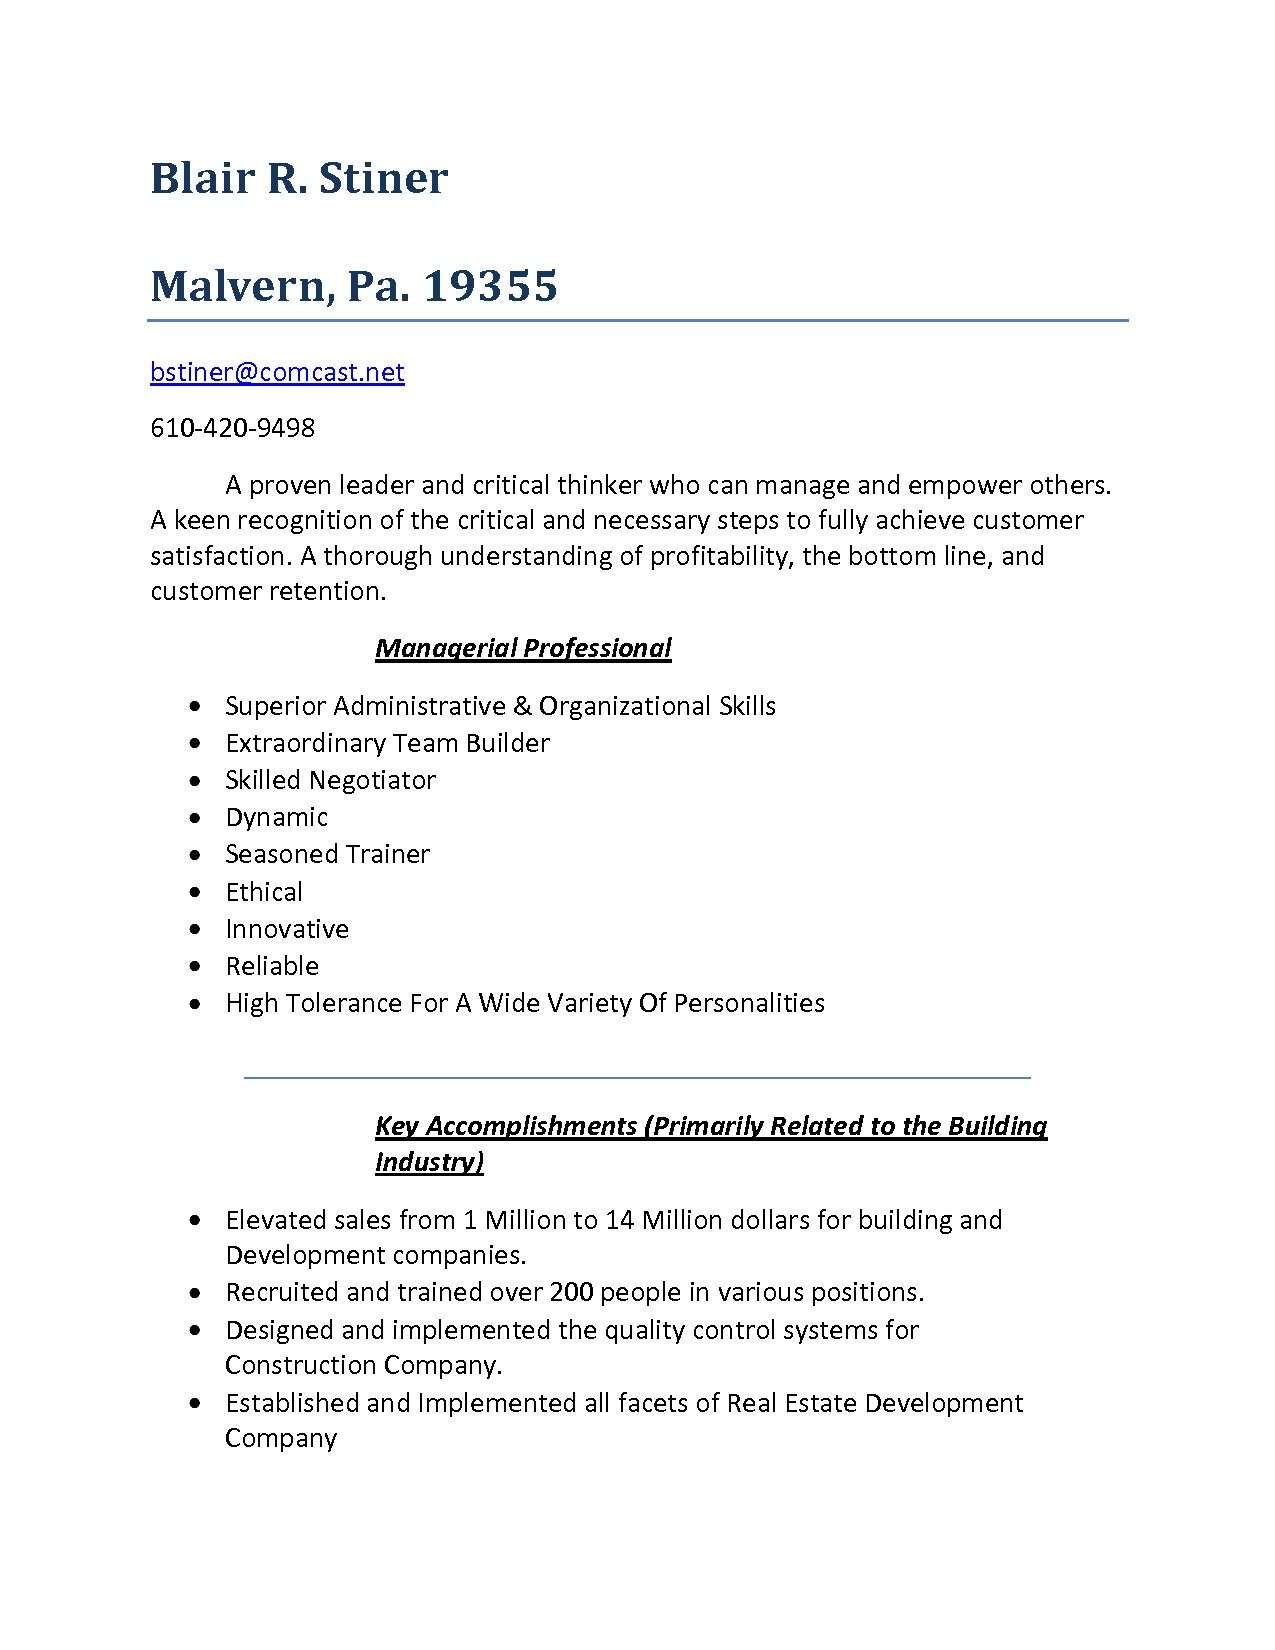 Resume For Personal Assistant Personal Skills For Resume Personal Assistant Job Resume